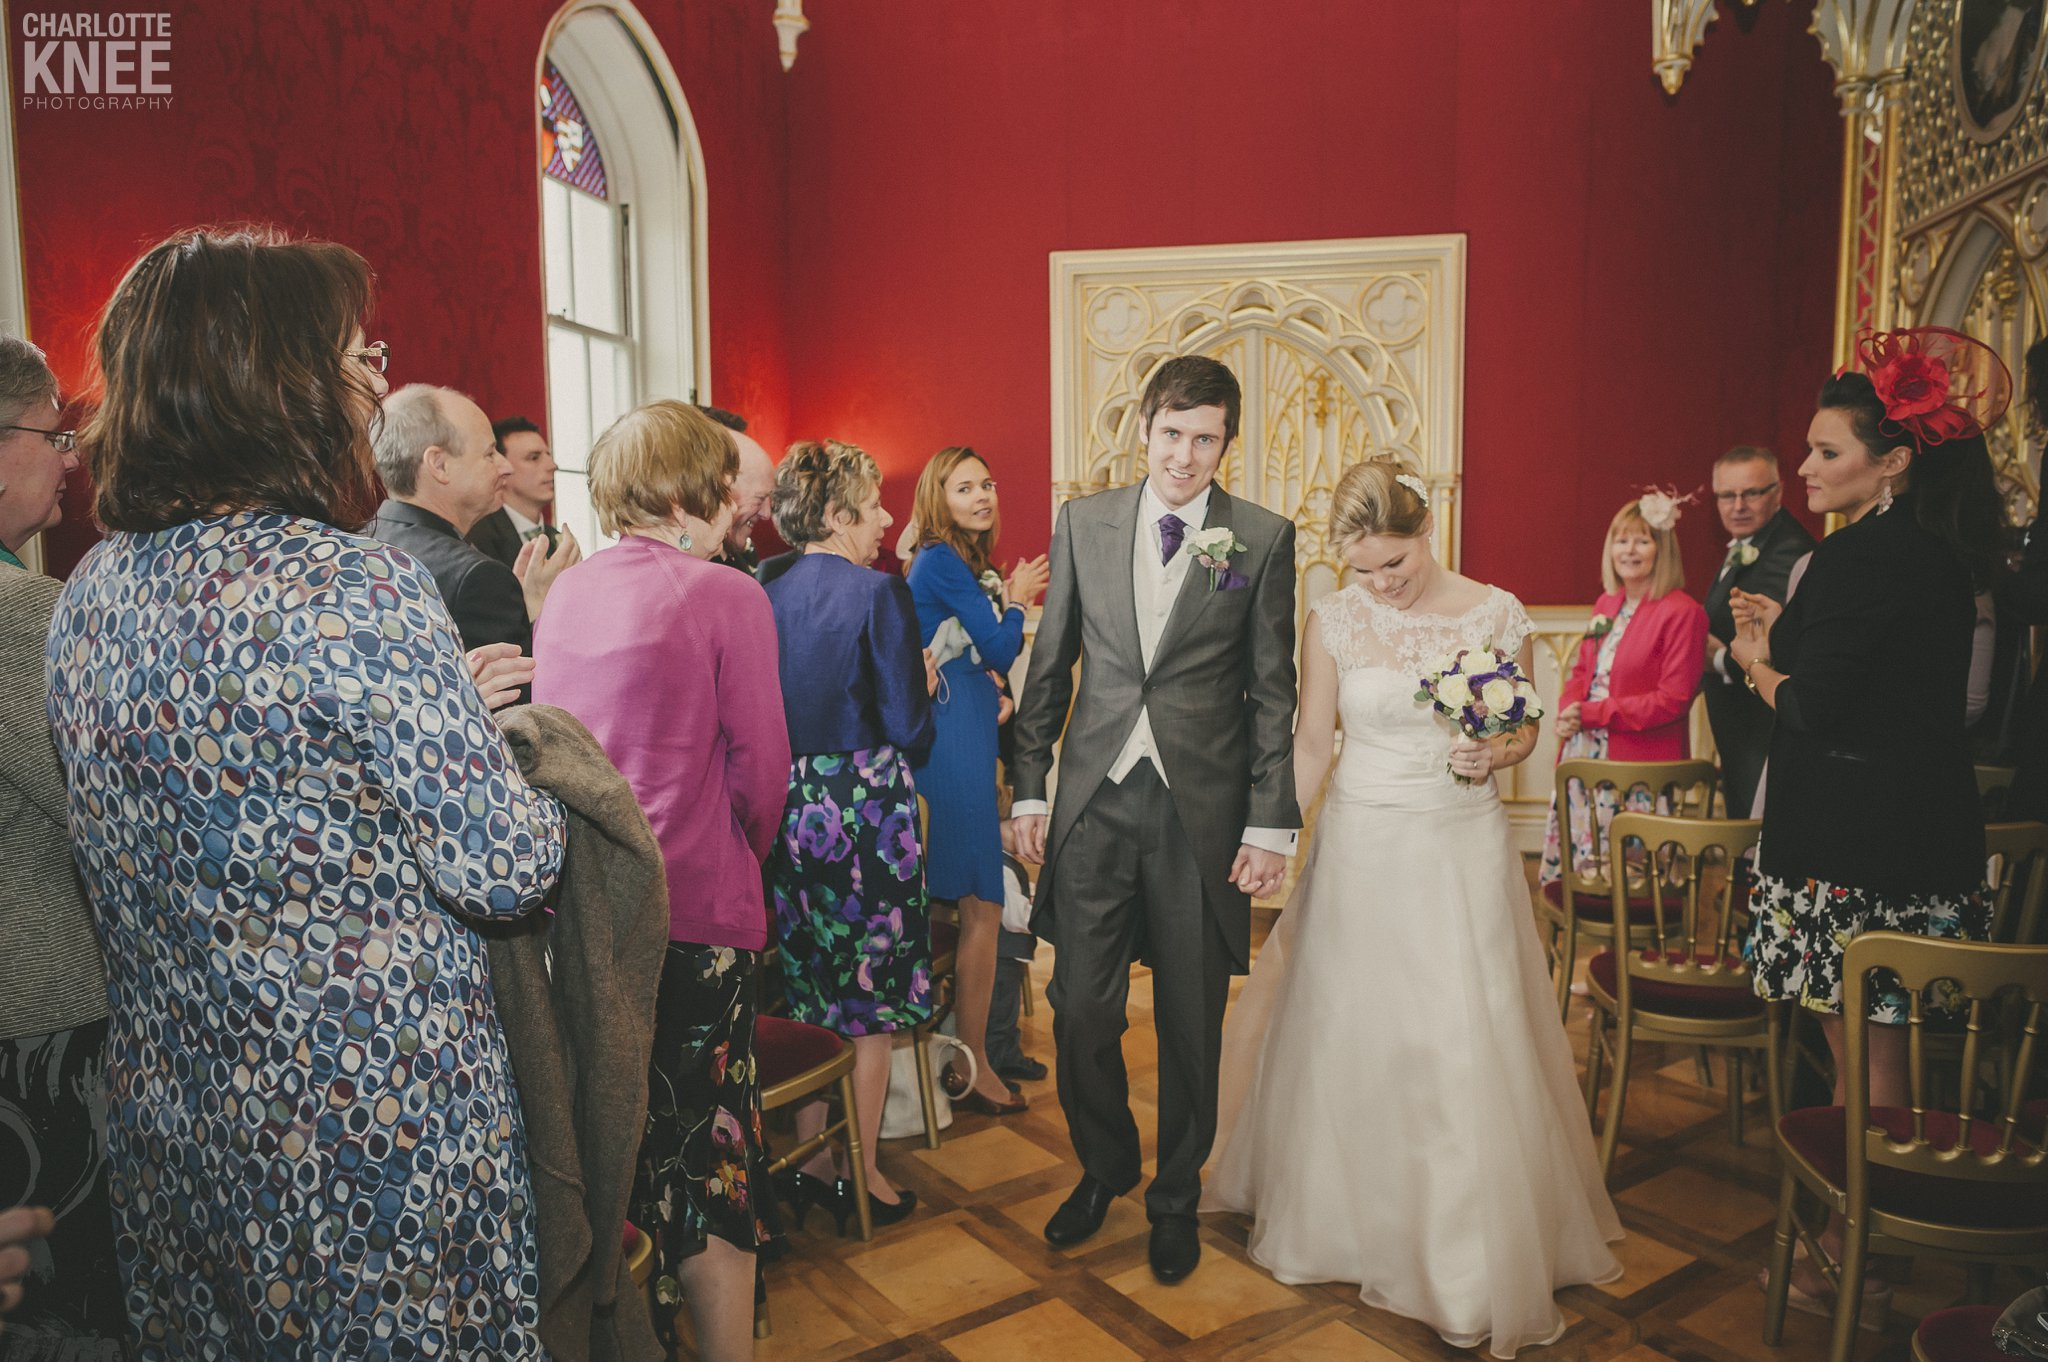 LONDON-WEDDING-PHOTOGRAPHY-STRAWBERRY-HILL-HOUSE-Charlotte-Knee-Photography_0044.jpg